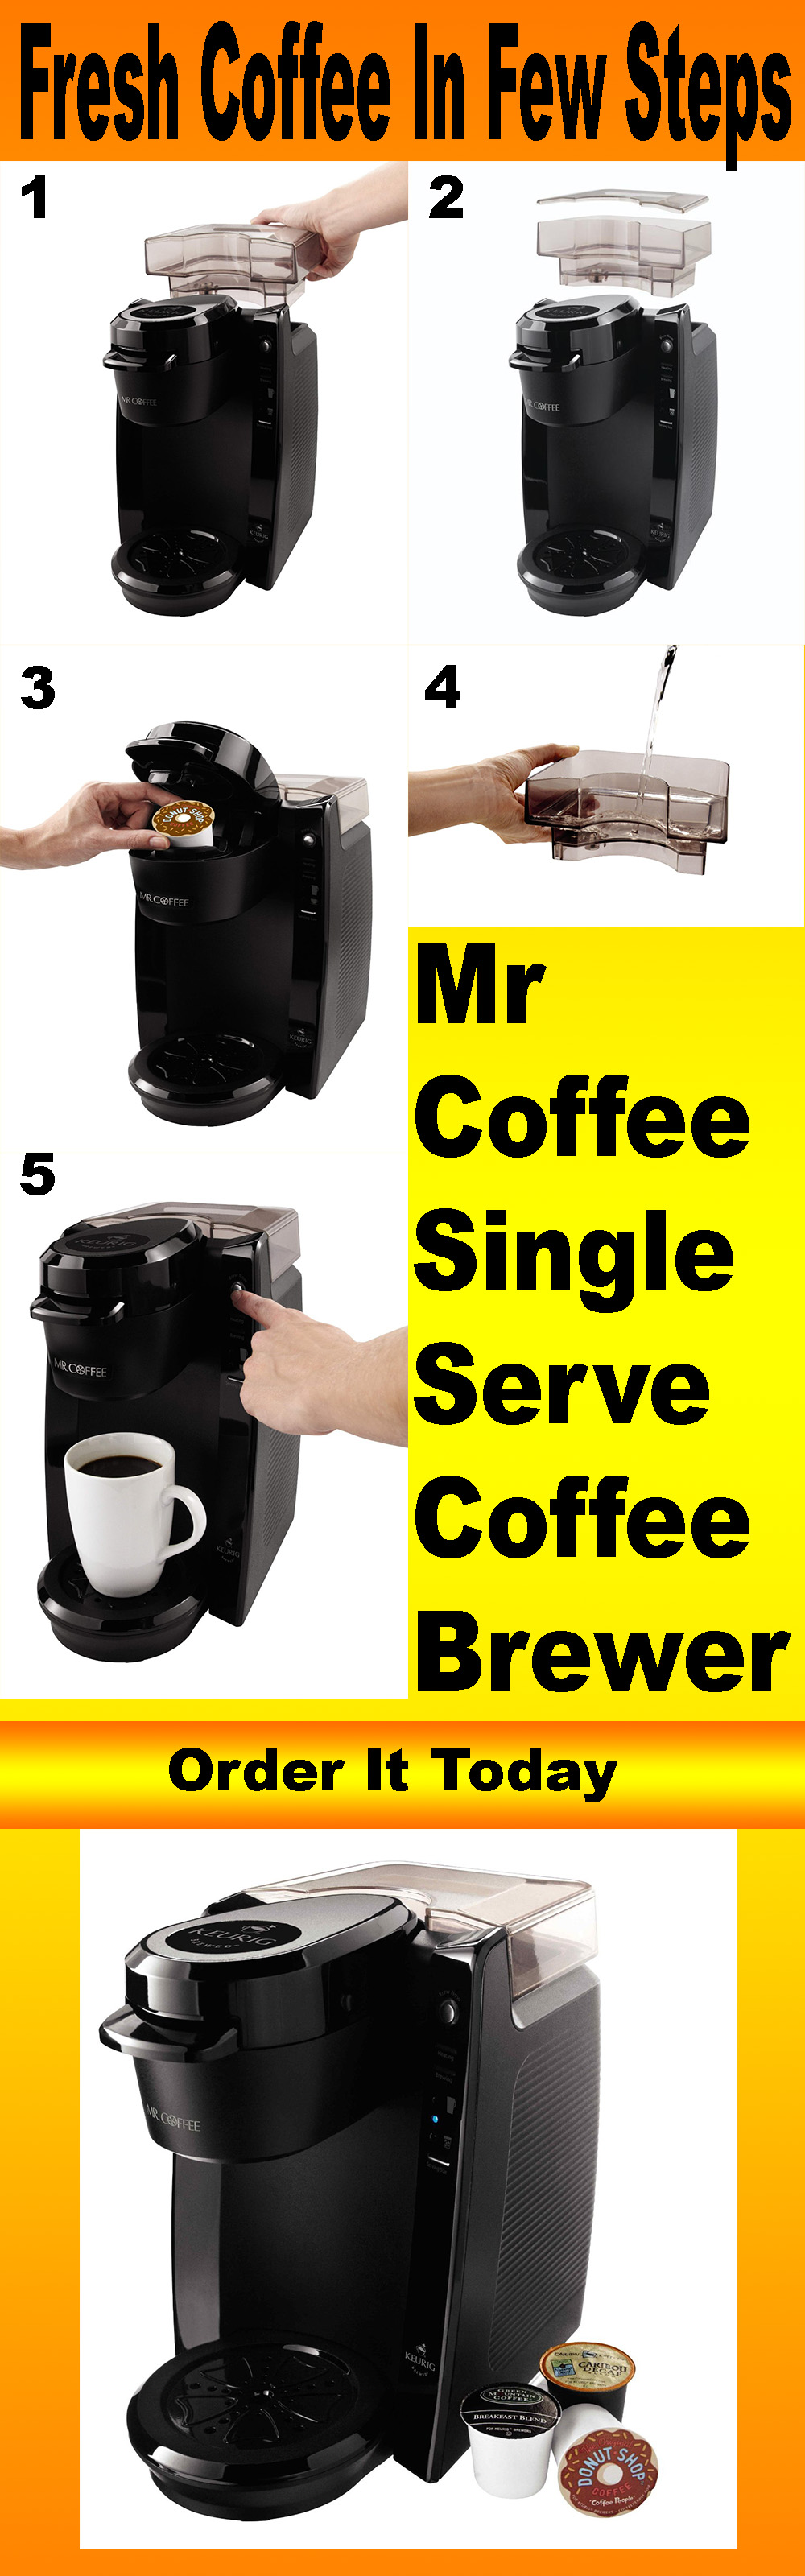 Mr. Coffee Single Serve Coffee Brewer Infographic Step By Step Guide